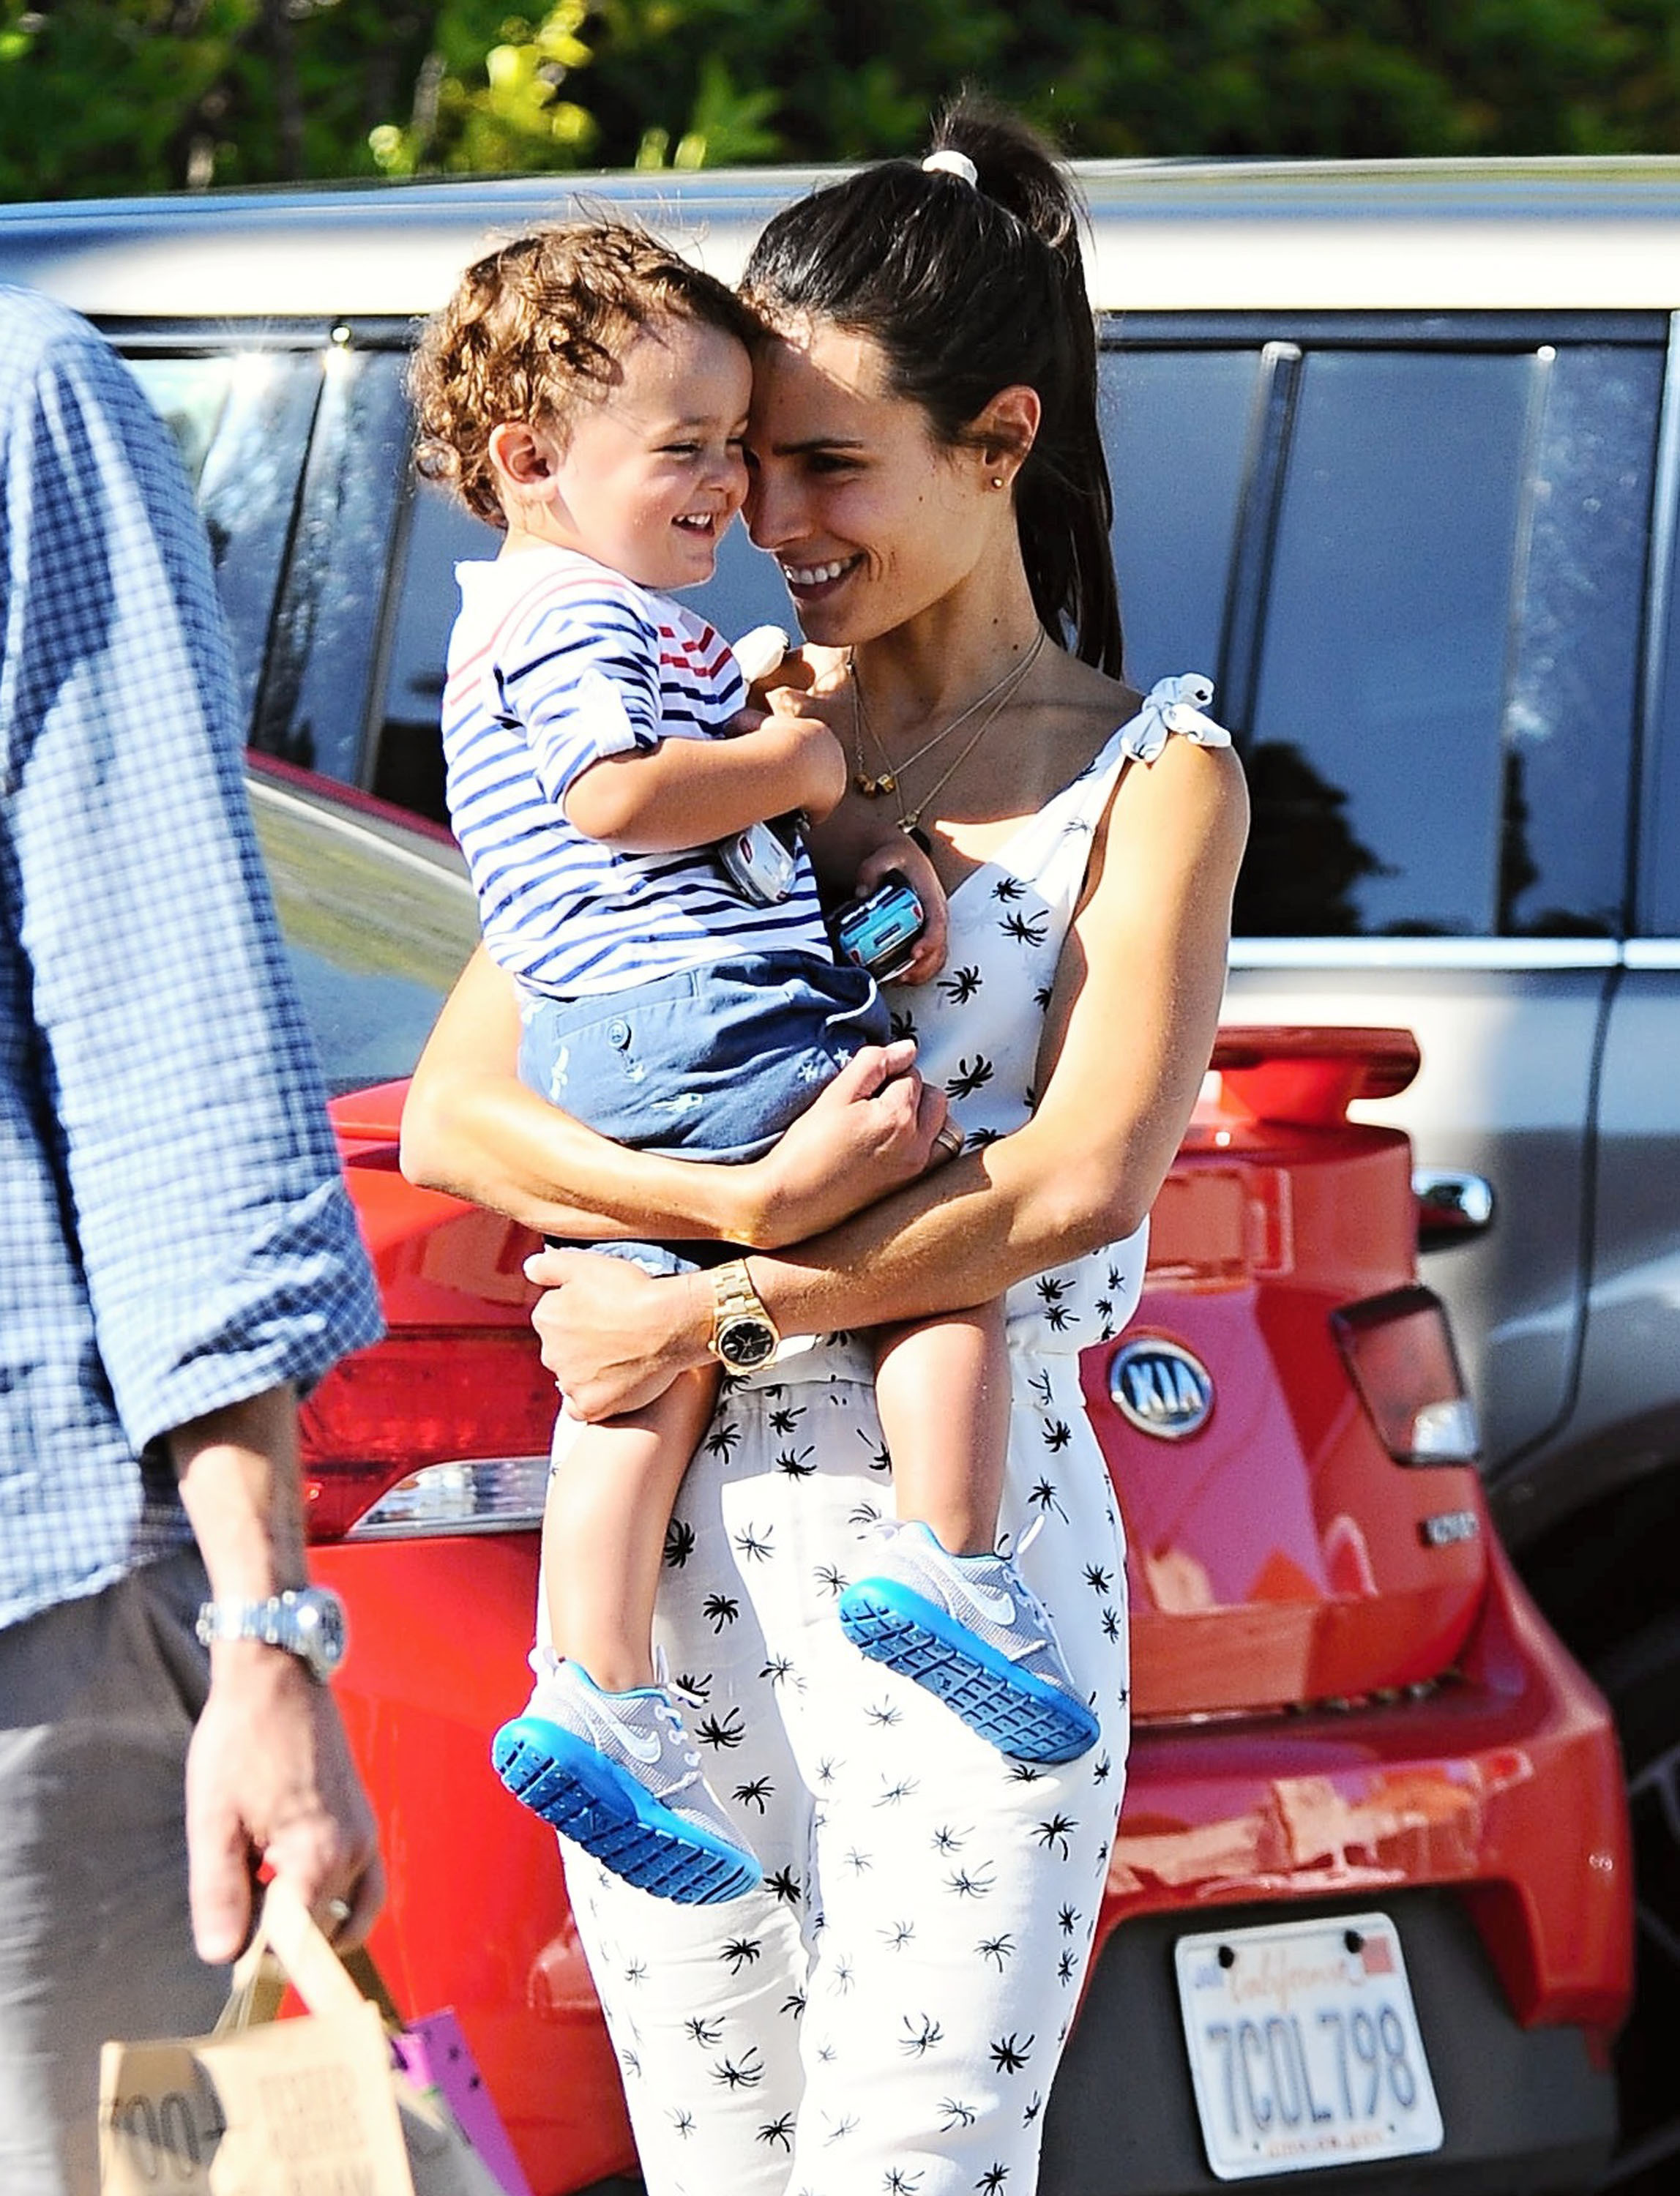 Jordana Brewster on the latest with her toddler son, Julian: